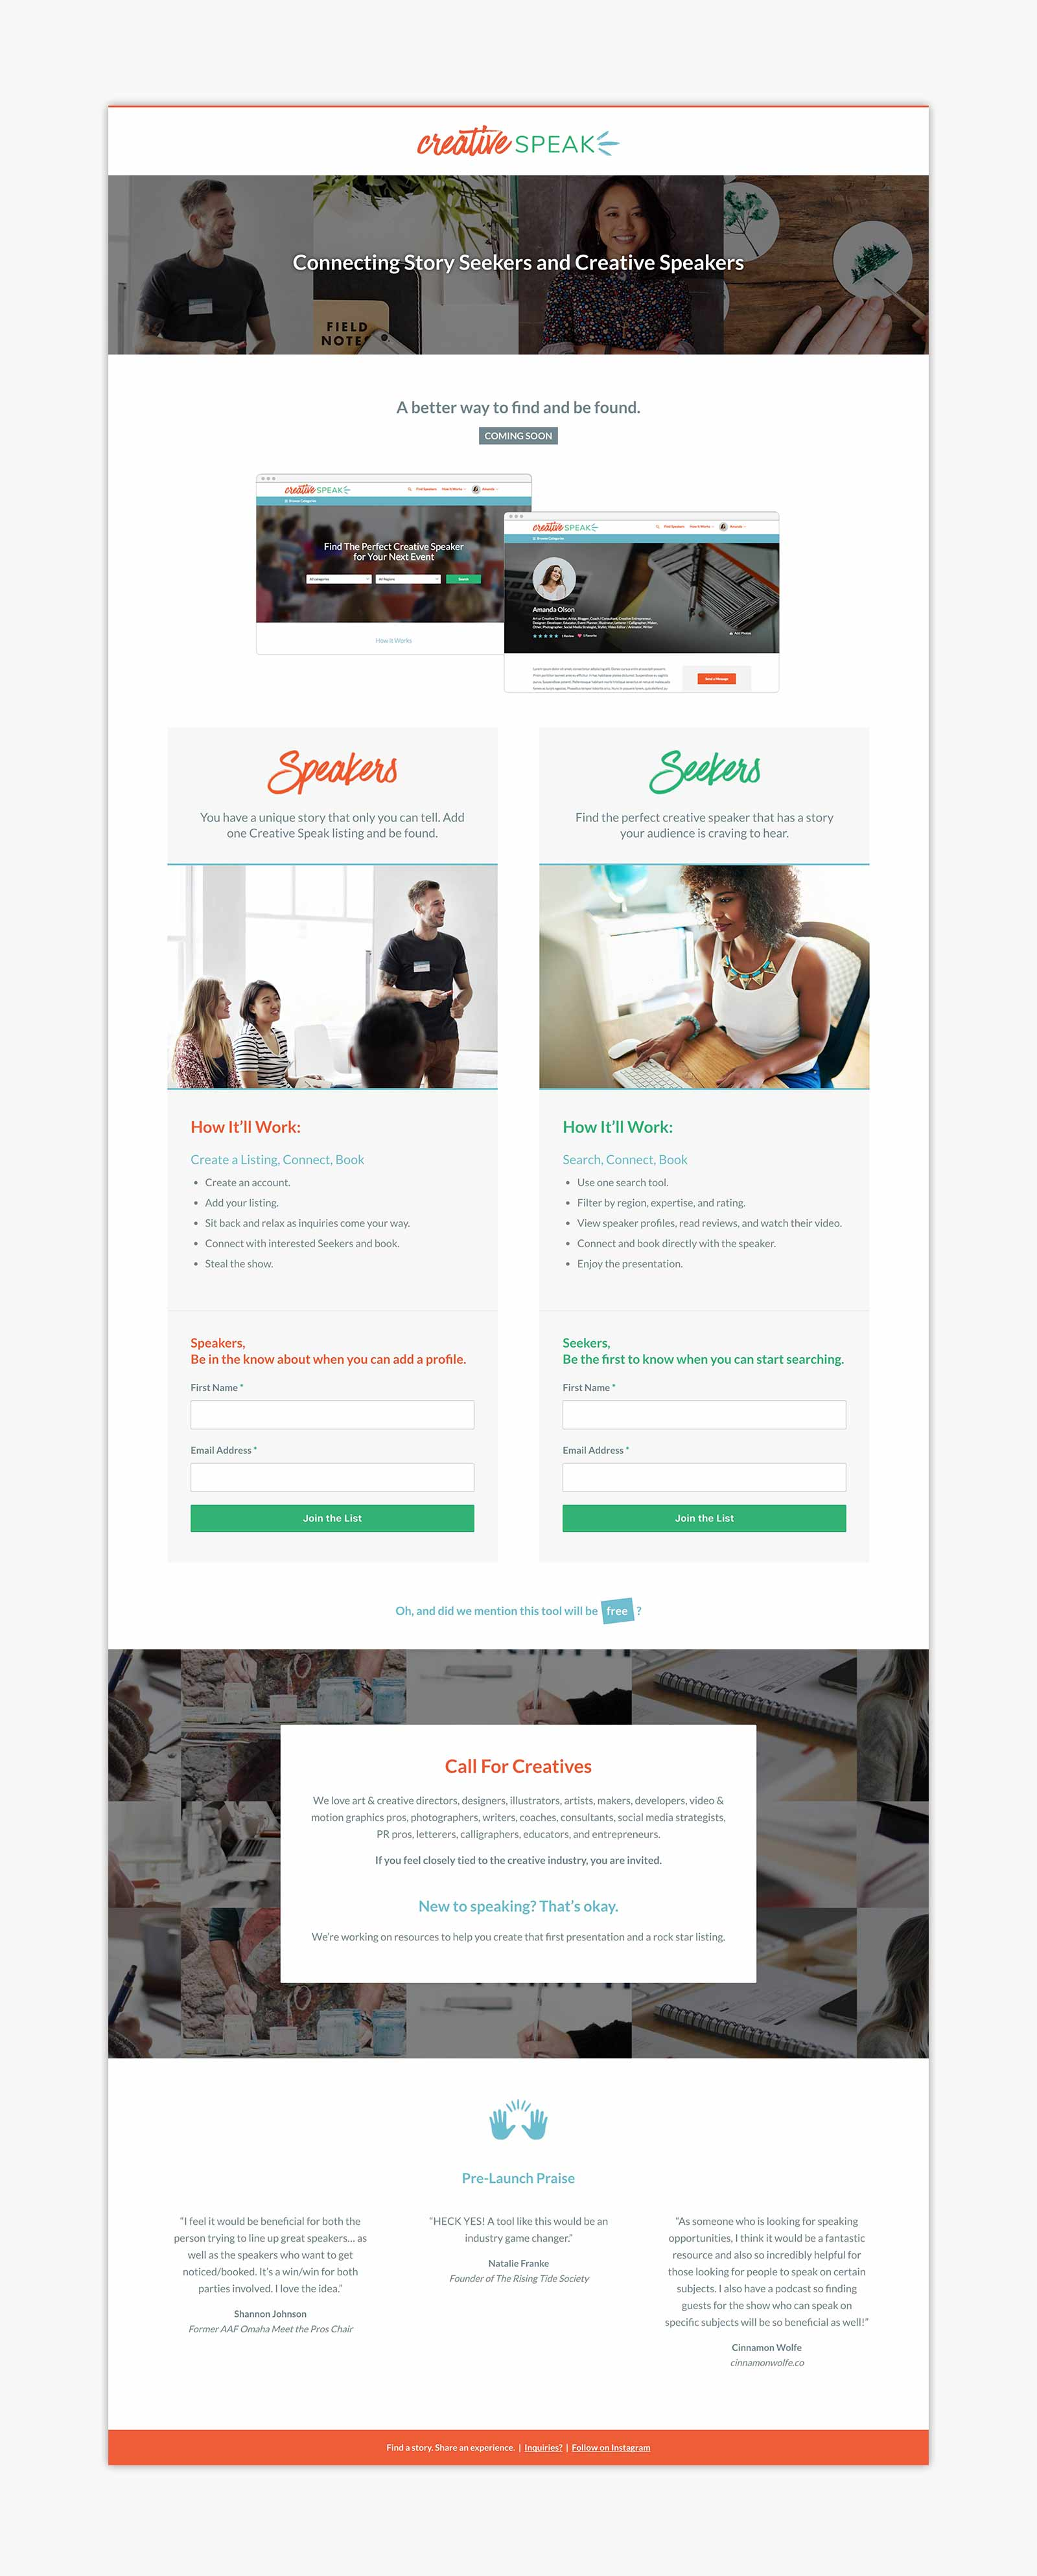 Creative Speak - Landing page layout design